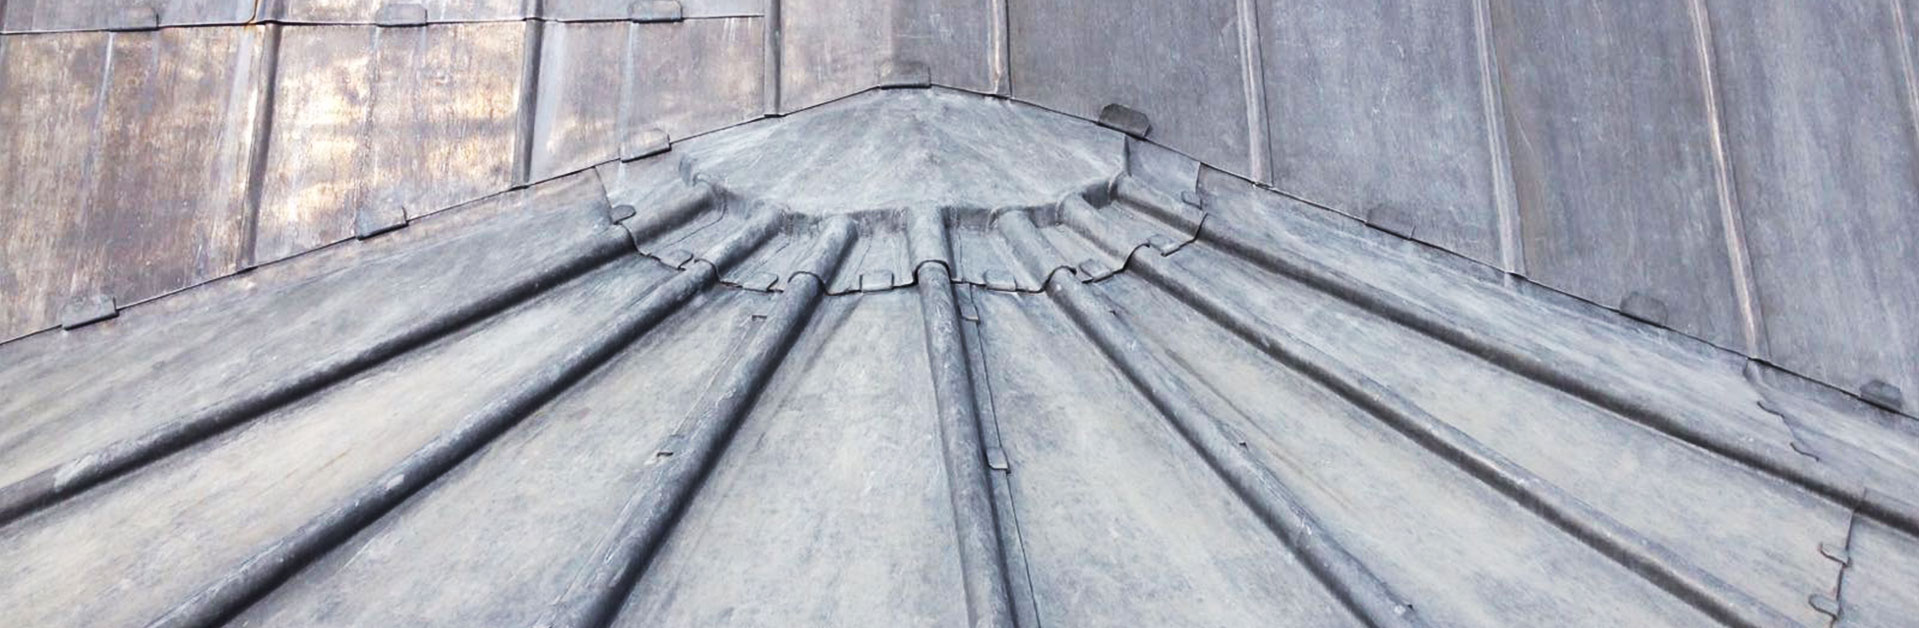 Close up lead roofing